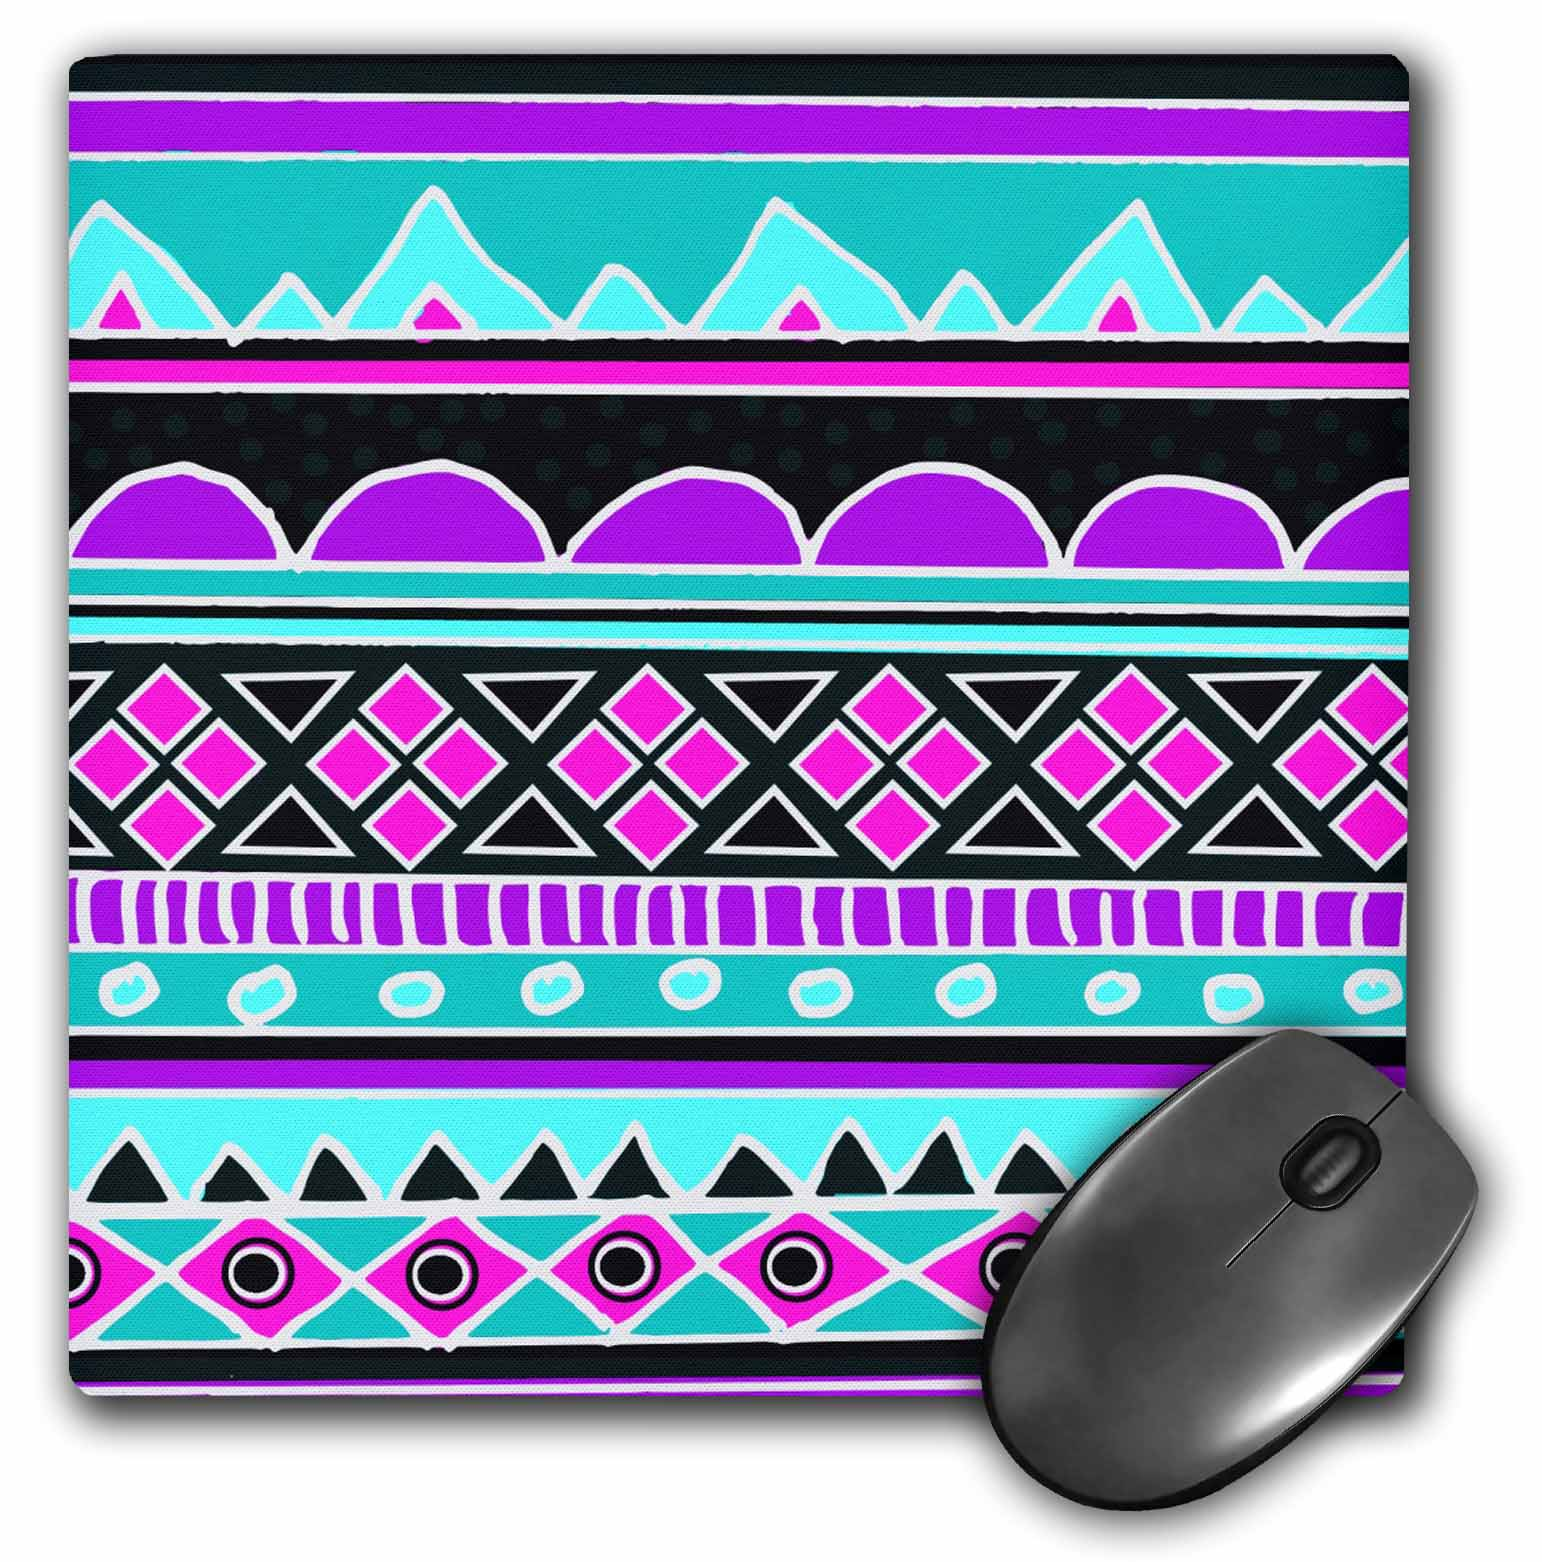 3dRose Bright tribal pattern - neon blue fluorescent hot pink purple black 80s aztec zigzag patterned rows, Mouse Pad, 8 by 8 inches